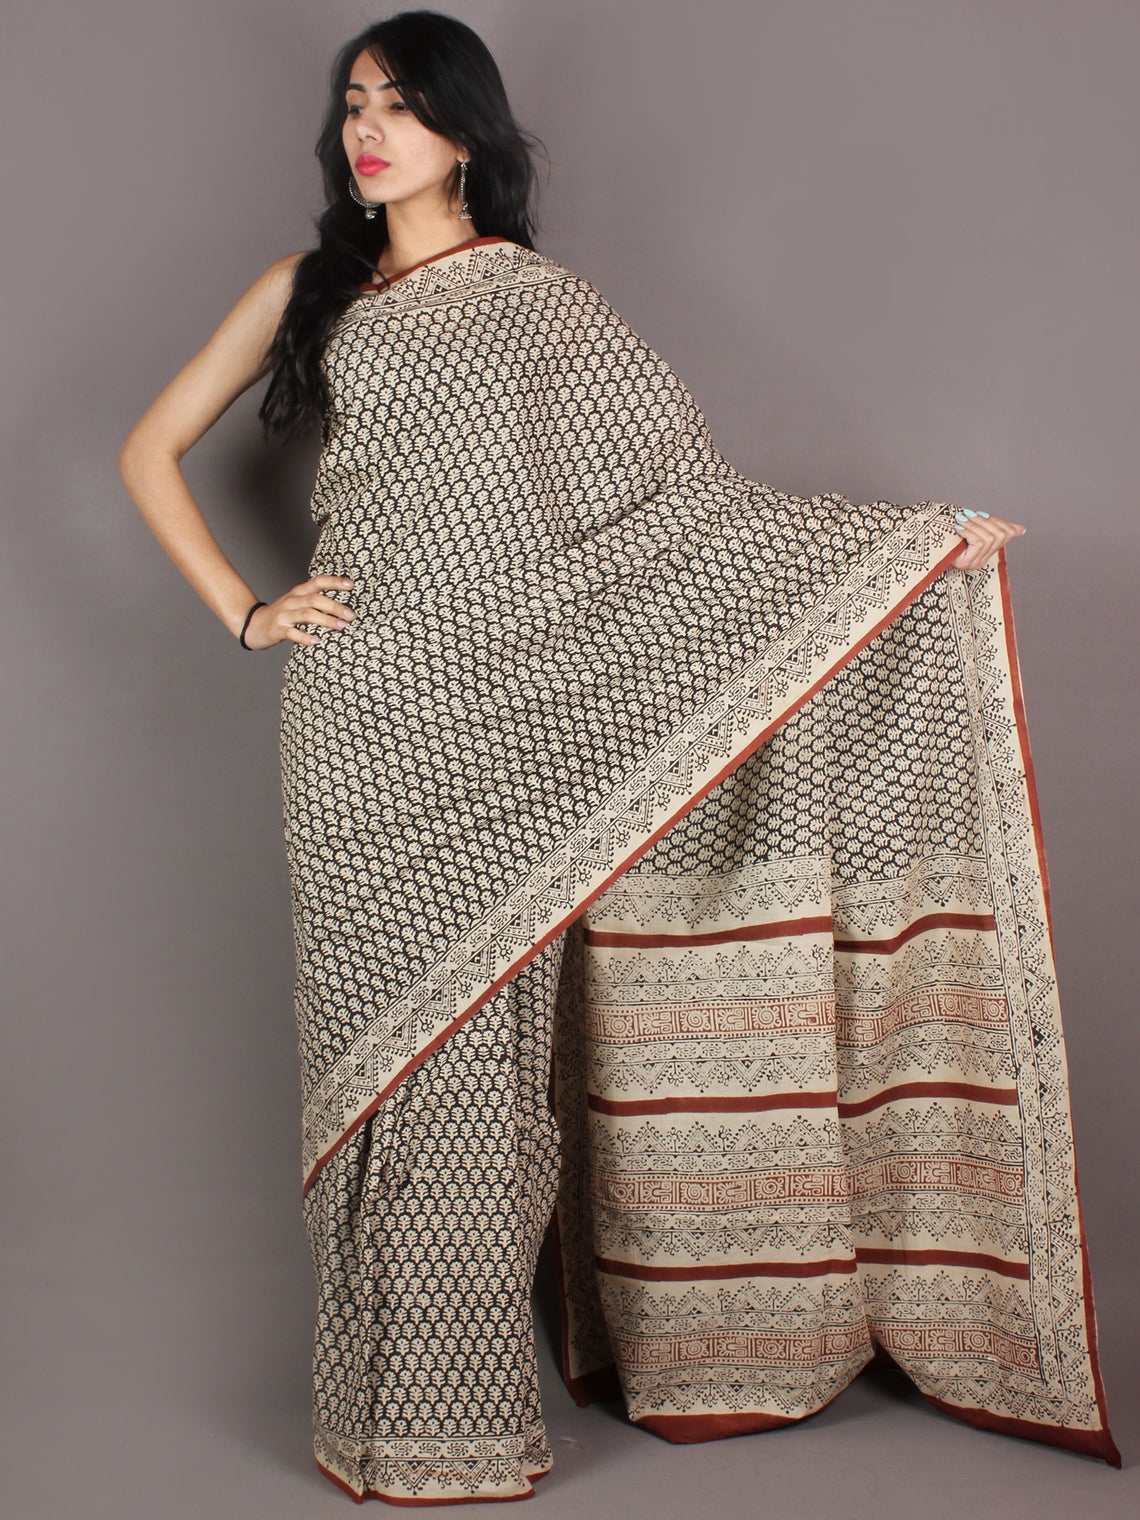 Ivory Black Brown Hand Block Printed in Natural Colors Cotton Mul Saree - S03170941